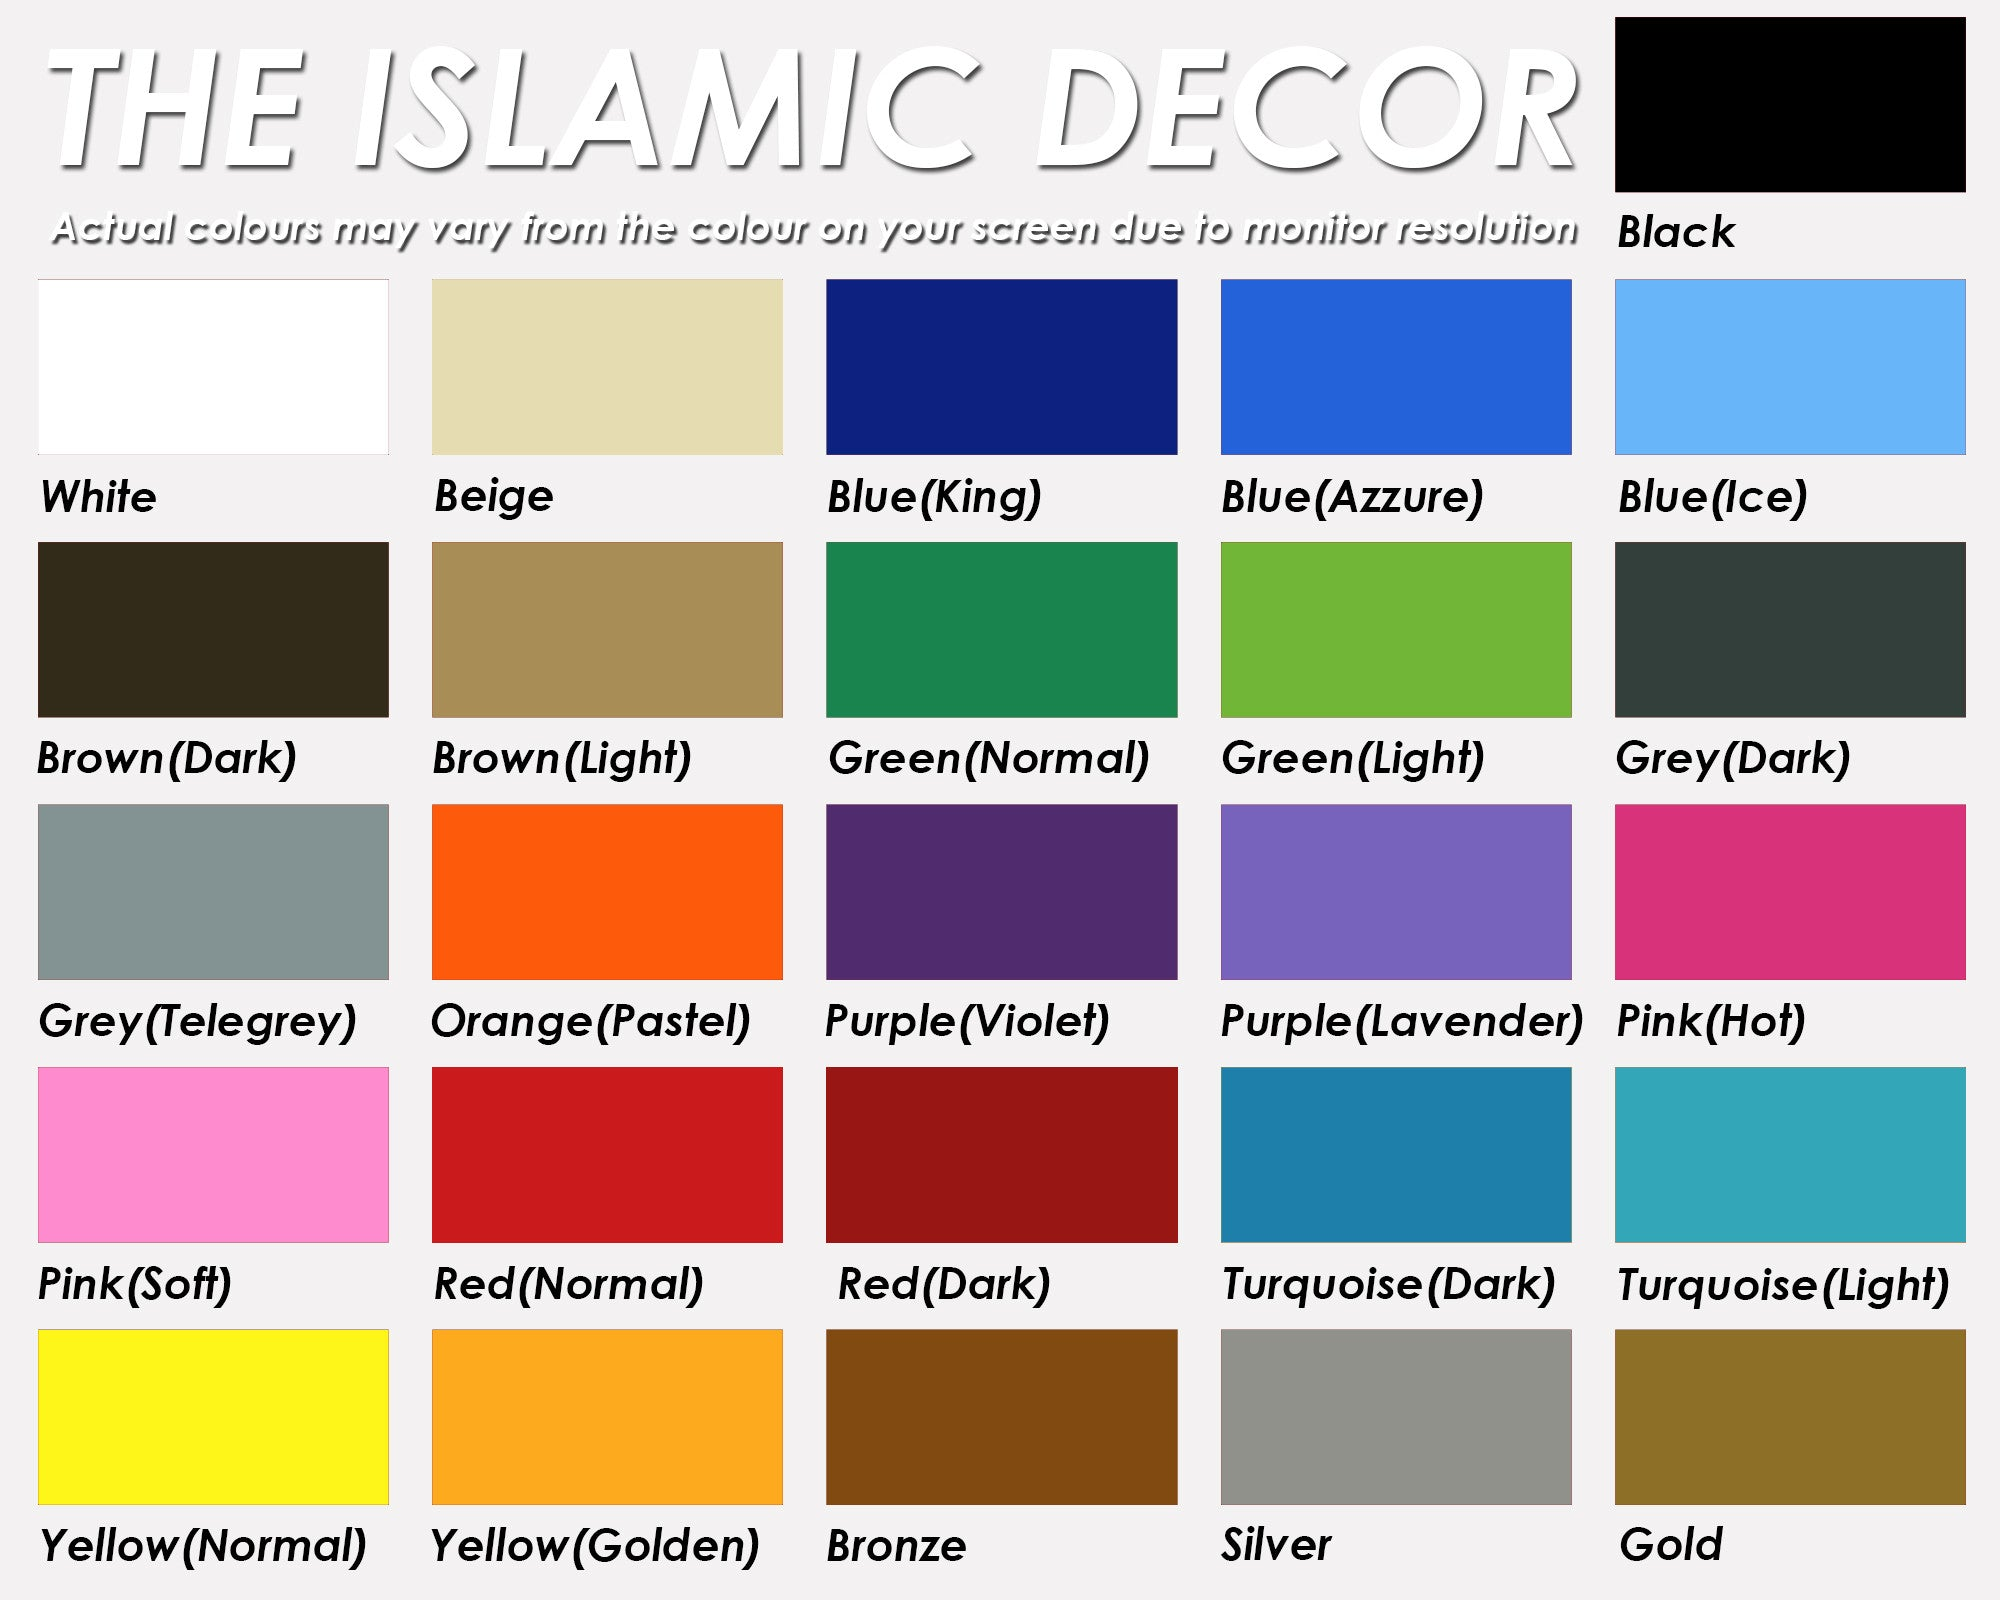 Kitchen Colours And Designs Dining Design Version 02 Decal The Islamic Decor